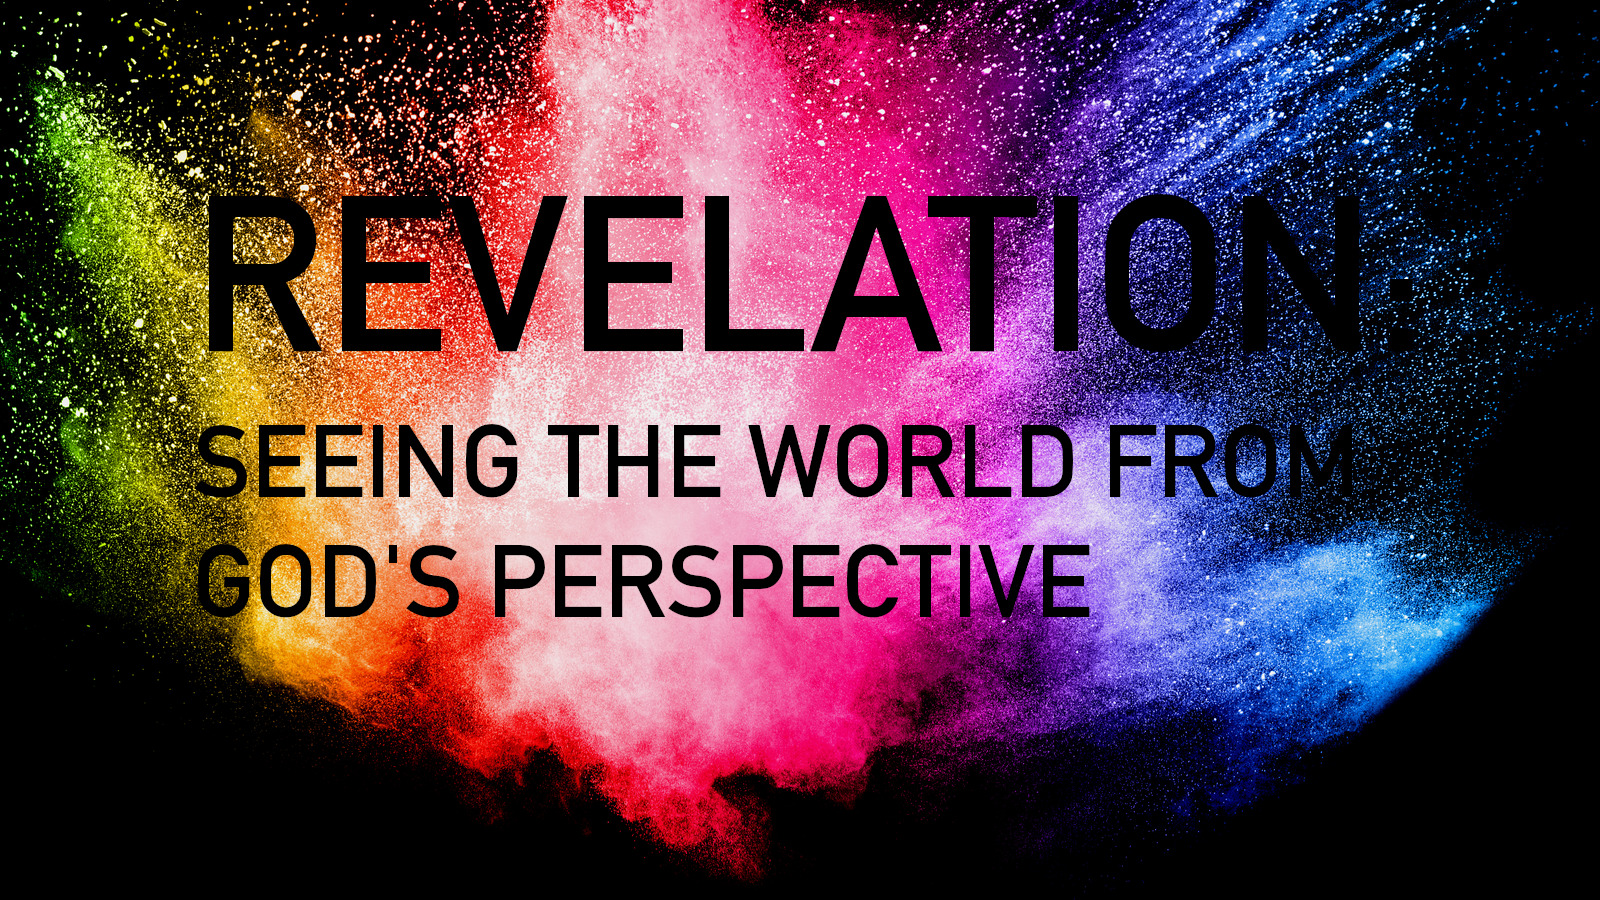 Revelation 10-11: Victory through suffering